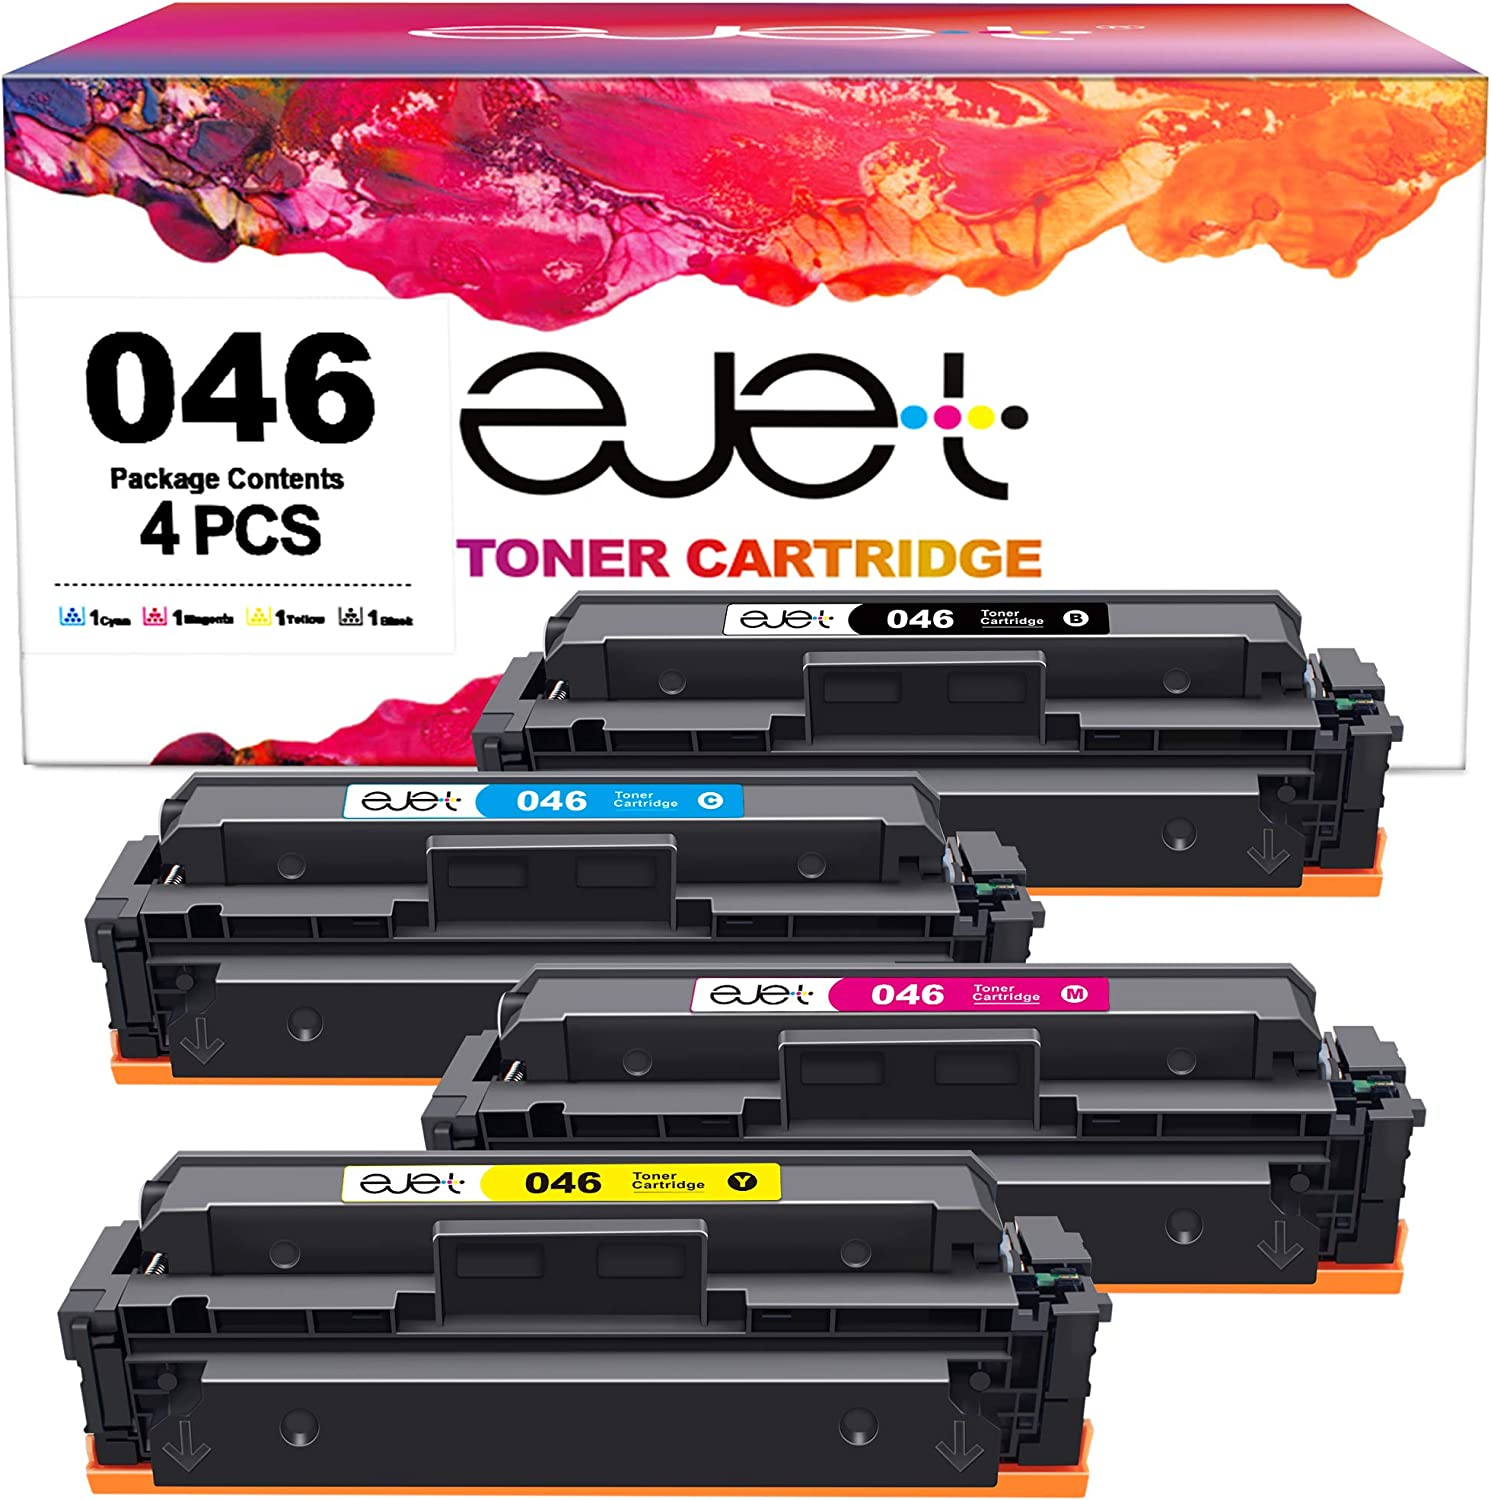 ejet mf733cdw Toner Compatible 046h Toner Cartridge Replacement for Canon 046 CRG-046 Toner for Canon ImageCLASS MF733Cdw MF731Cdw MF735Cdw LBP654Cdw Printer Tray,4 Pack(Black, Cyan, Magenta, Yellow)